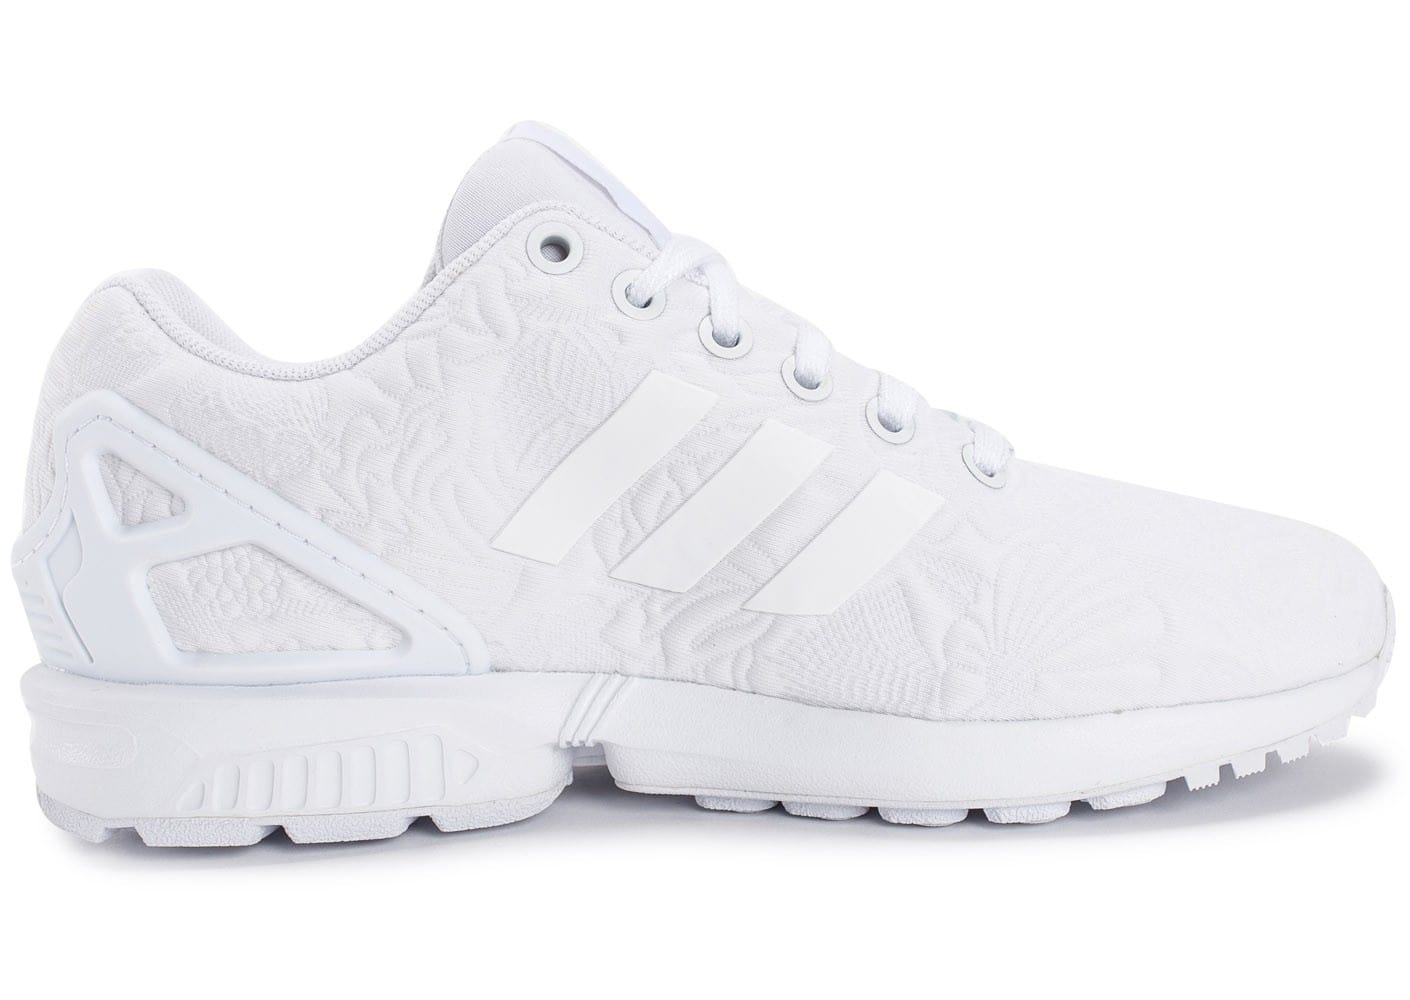 Chausport Adidas Blanche Chaussures Tropical Zx Flux 3d NvOm8n0w